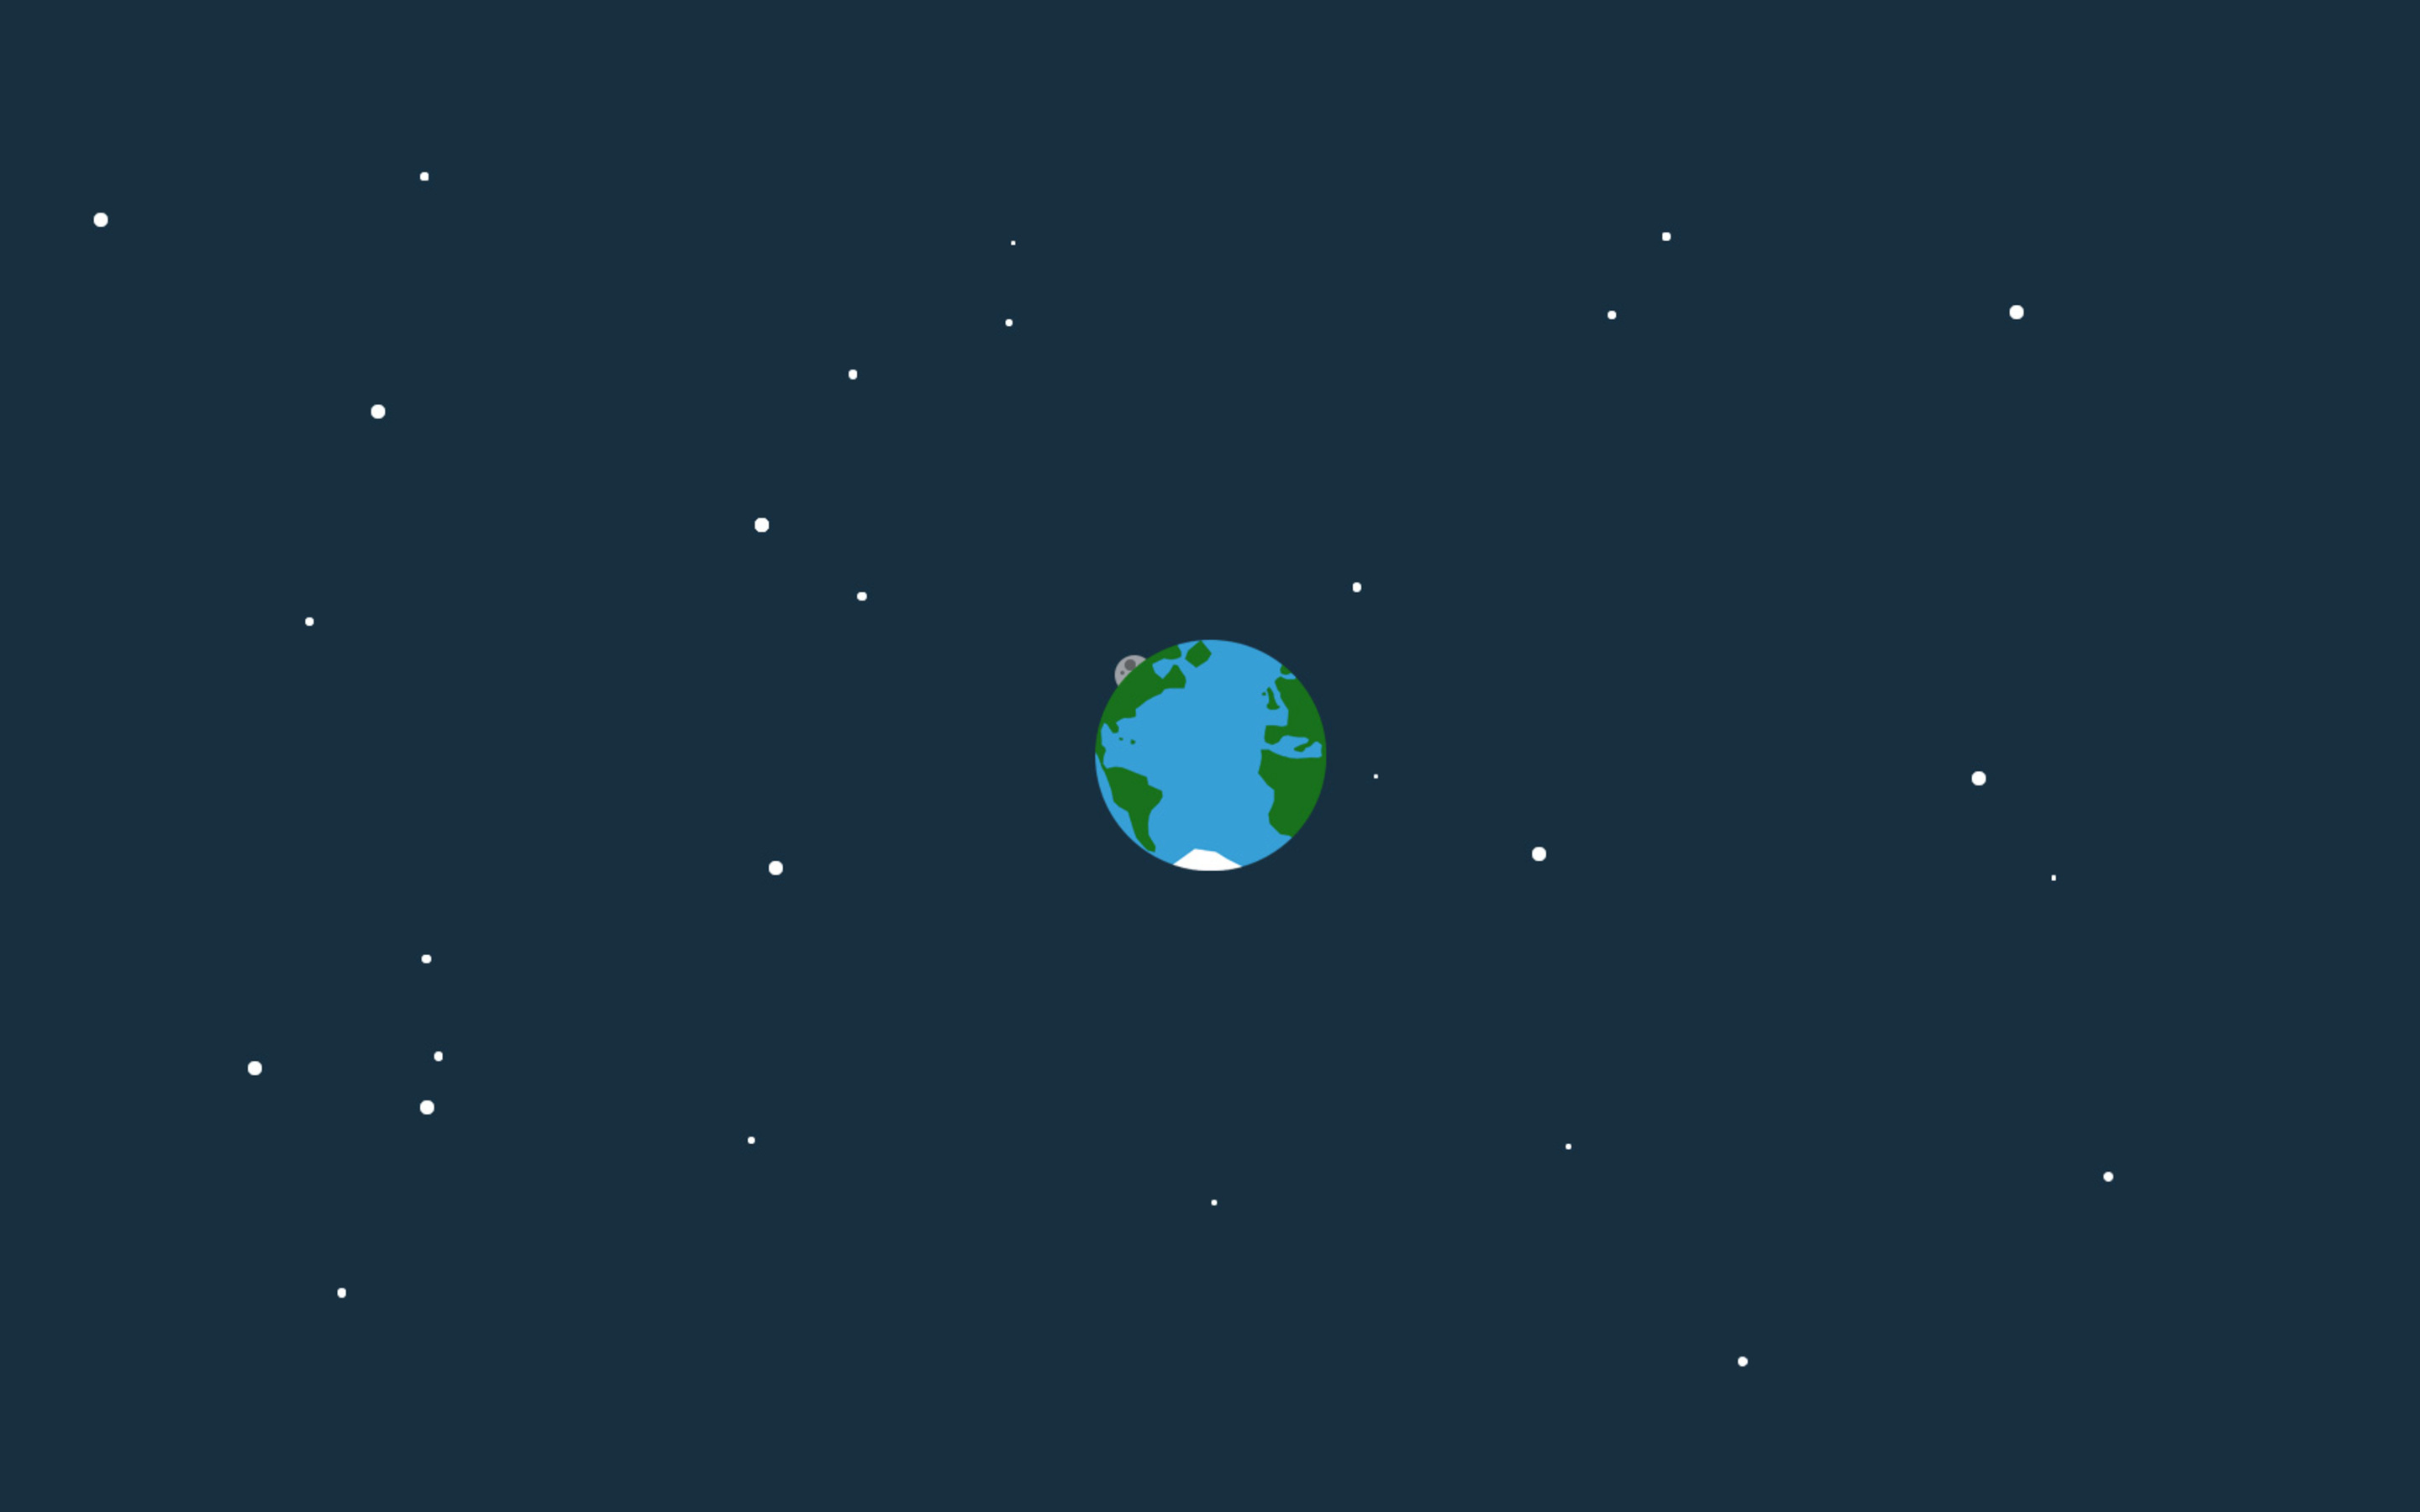 2880x1800 Space Minimalism Hd Macbook Pro Retina Hd 4k Wallpapers Images Backgrounds Photos And Pictures